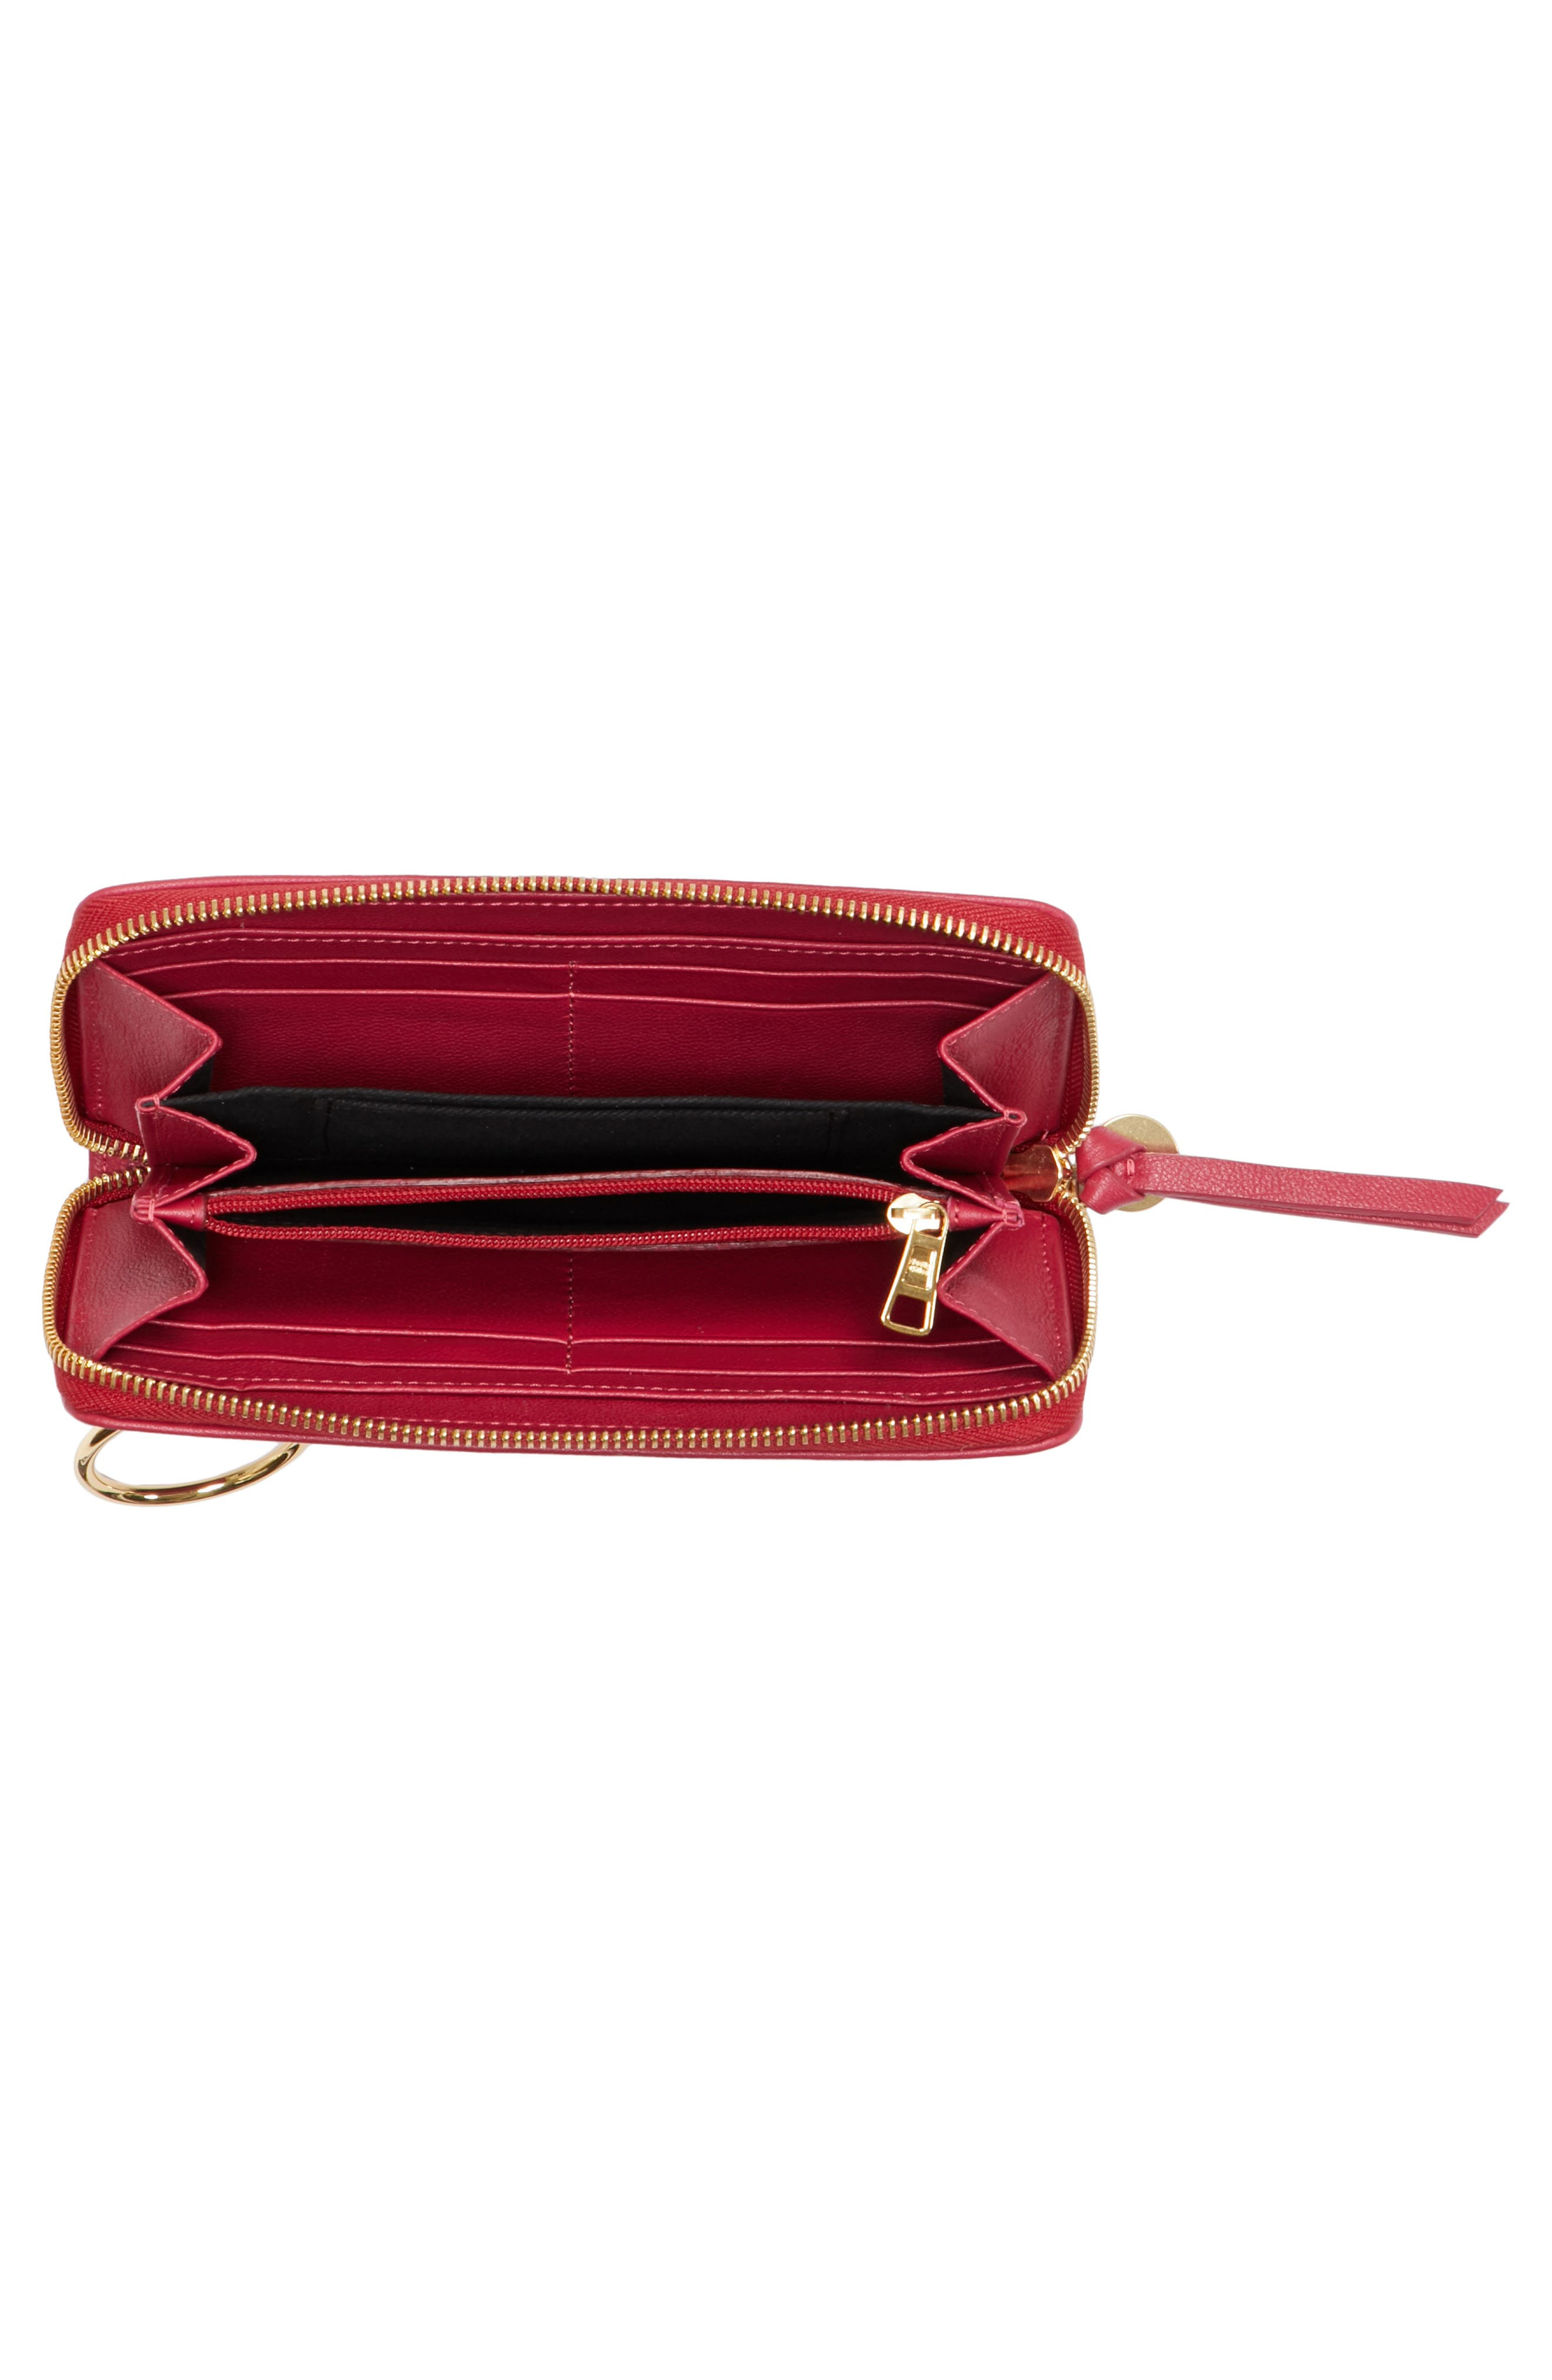 Mino Zip Around Leather Wallet,                             Alternate thumbnail 2, color,                             Berry Pink